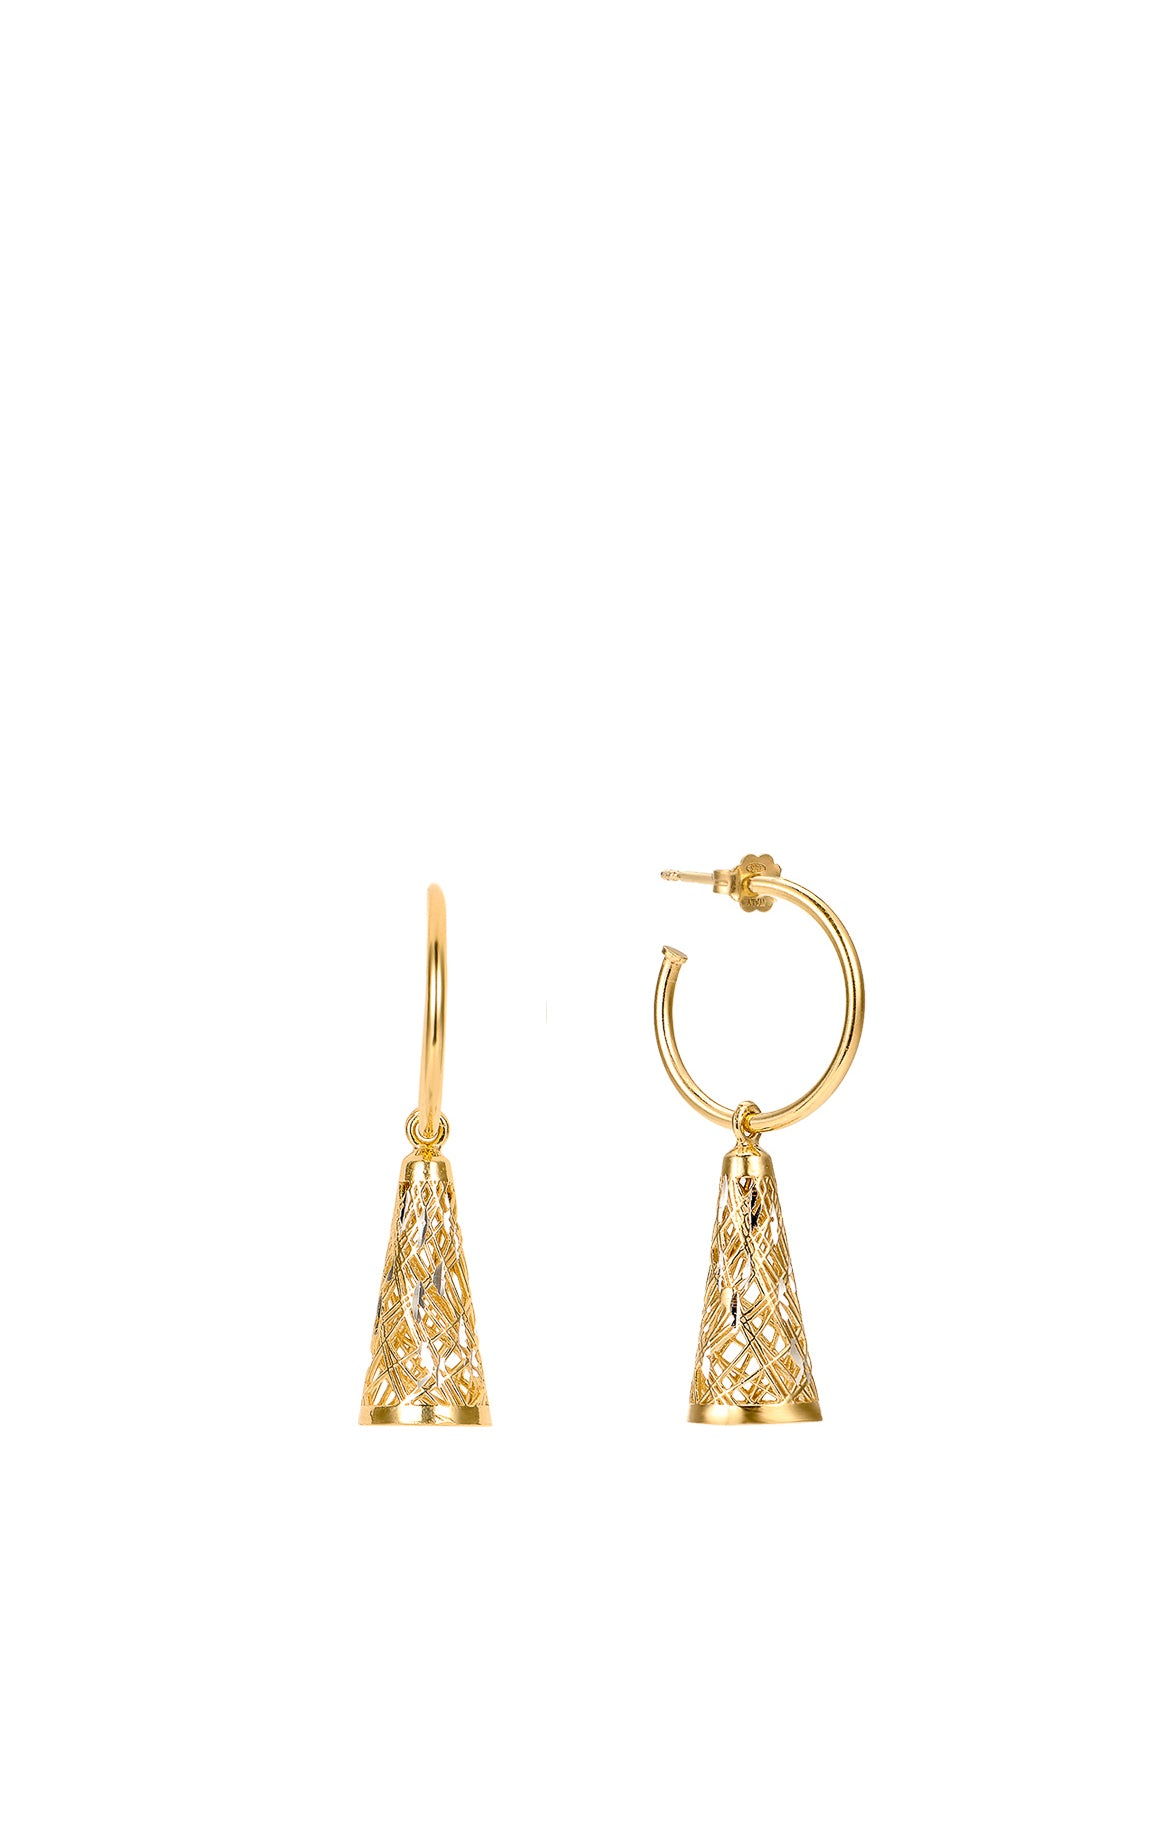 Structure of the Universe Gold Small Ring Earrings